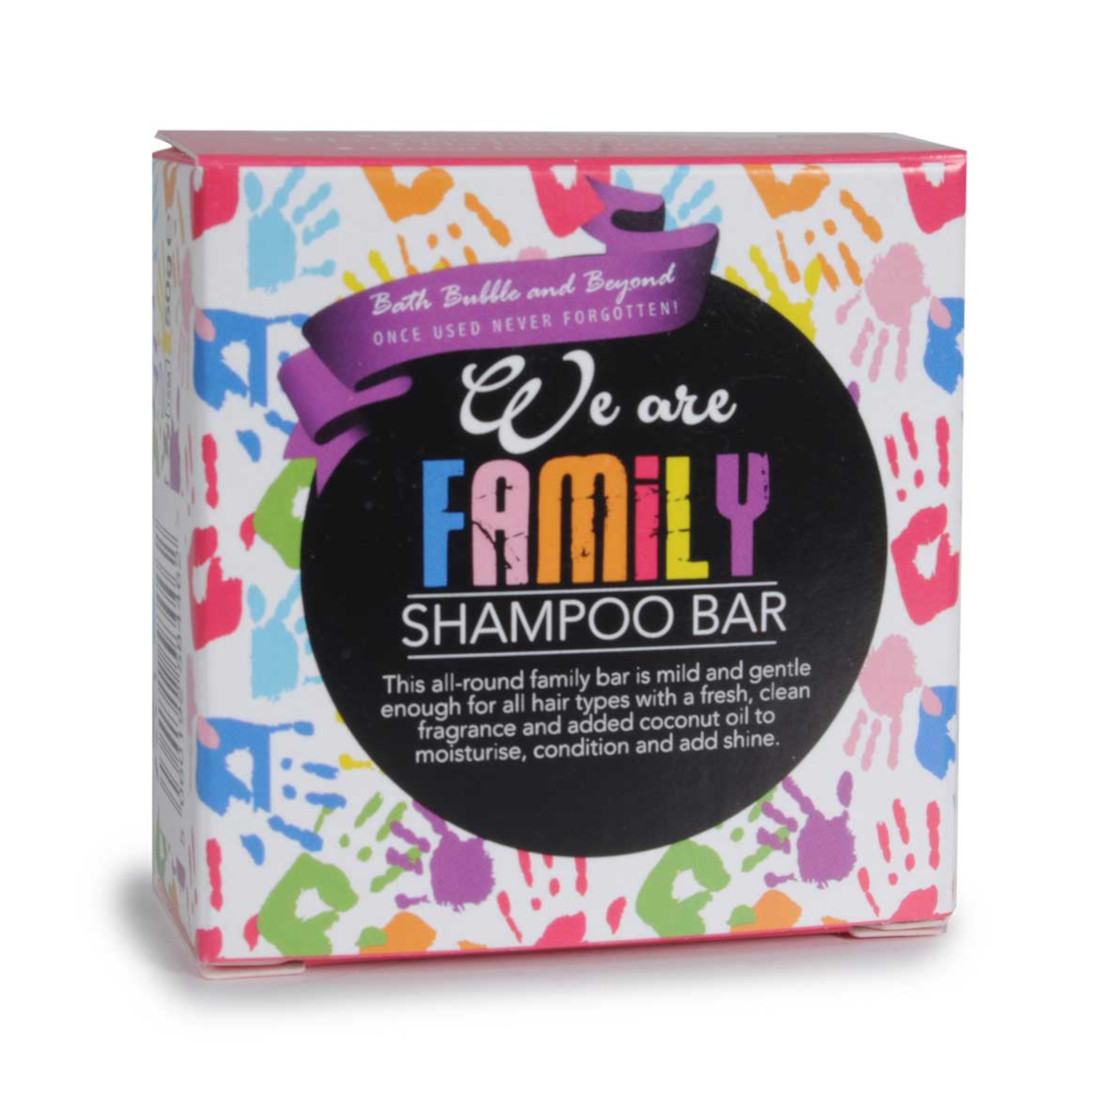 Bath Bubble and Beyond We are family Shampoo Bar